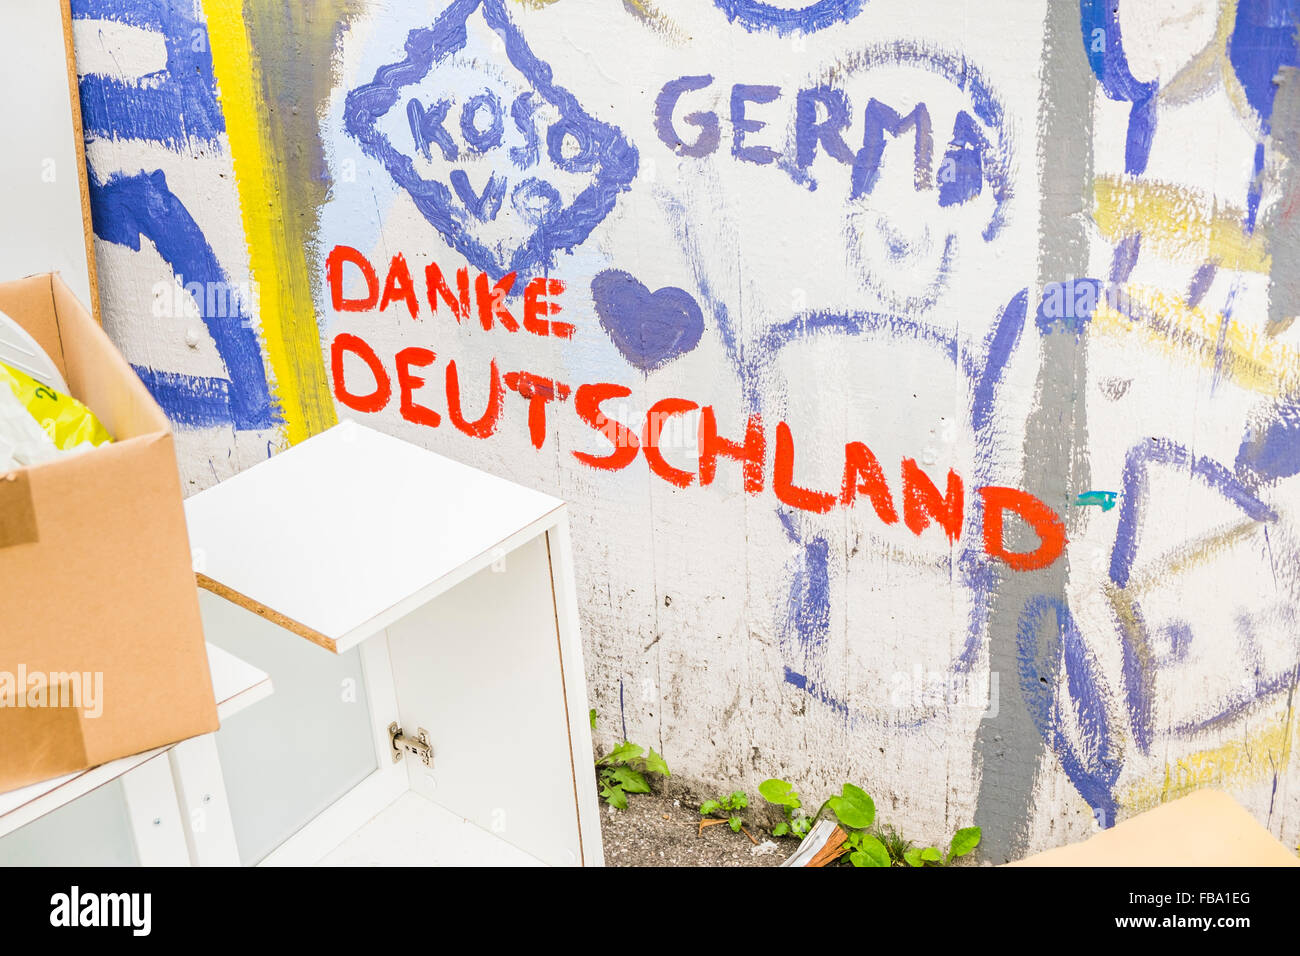 graffito: kosovo, thank you, germany, stuttgart - Stock Image